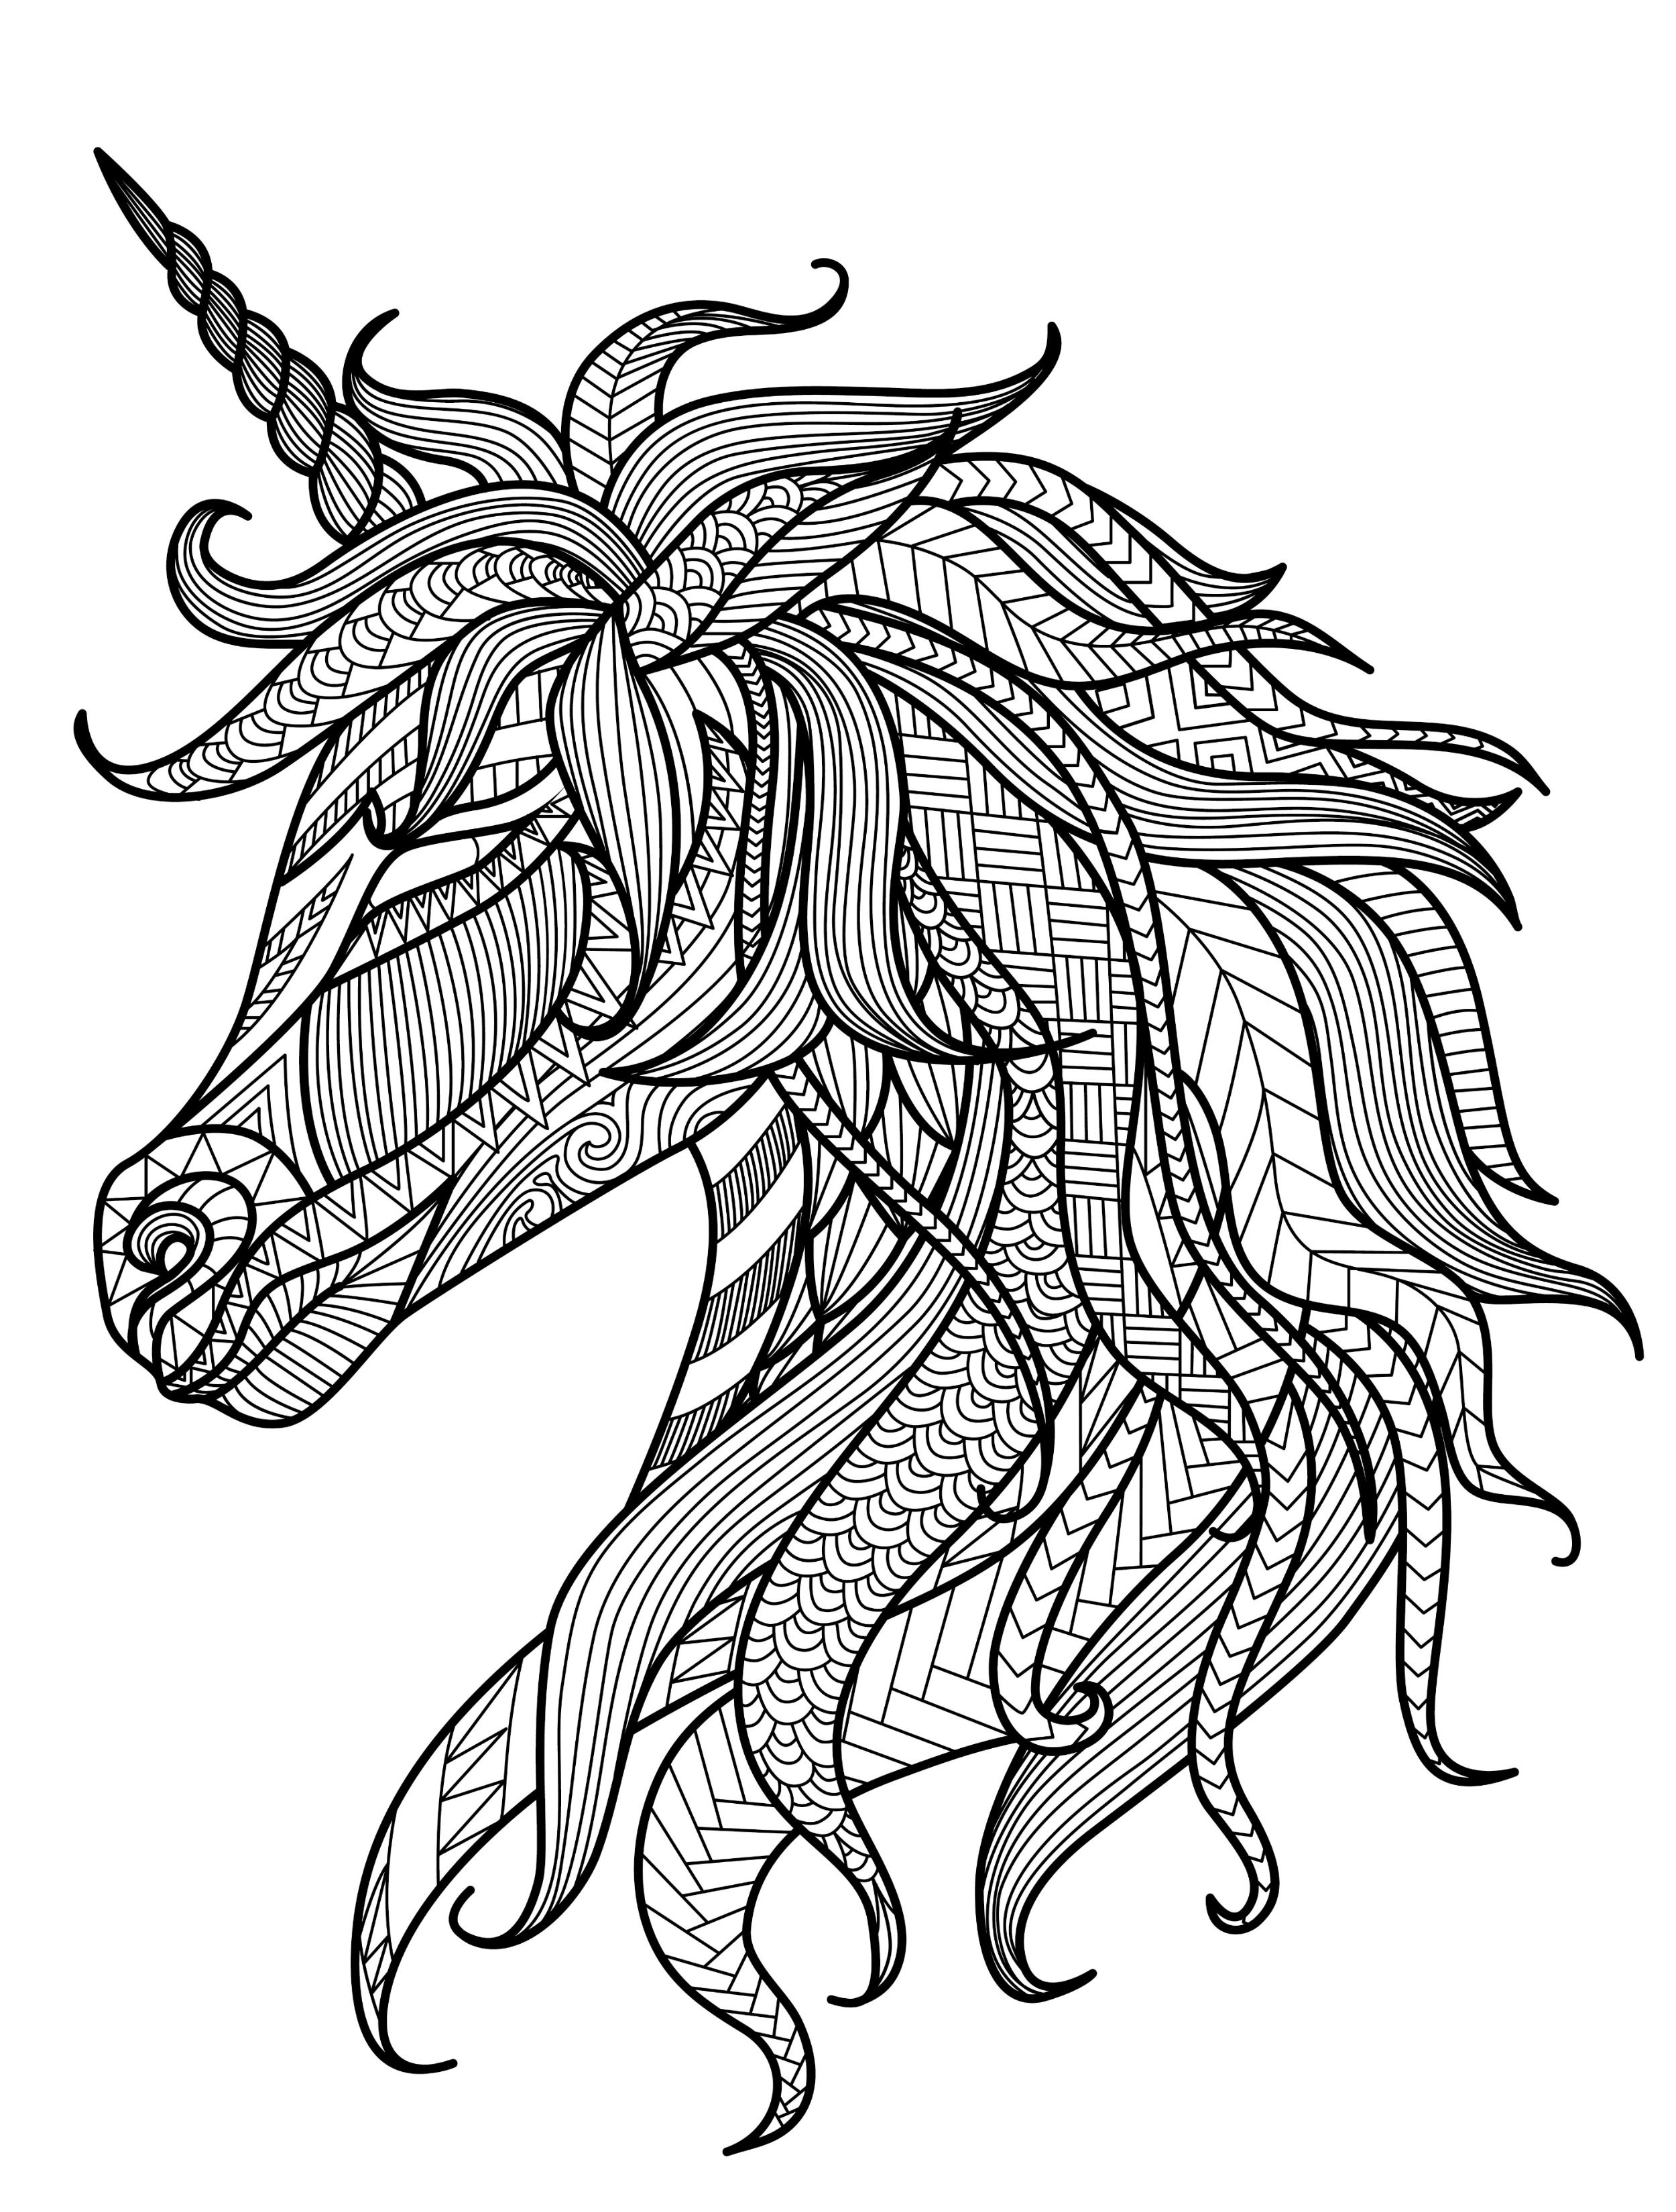 Coloring Pages For Adults Unicorns - 20 gorgeous free printable adult coloring pages